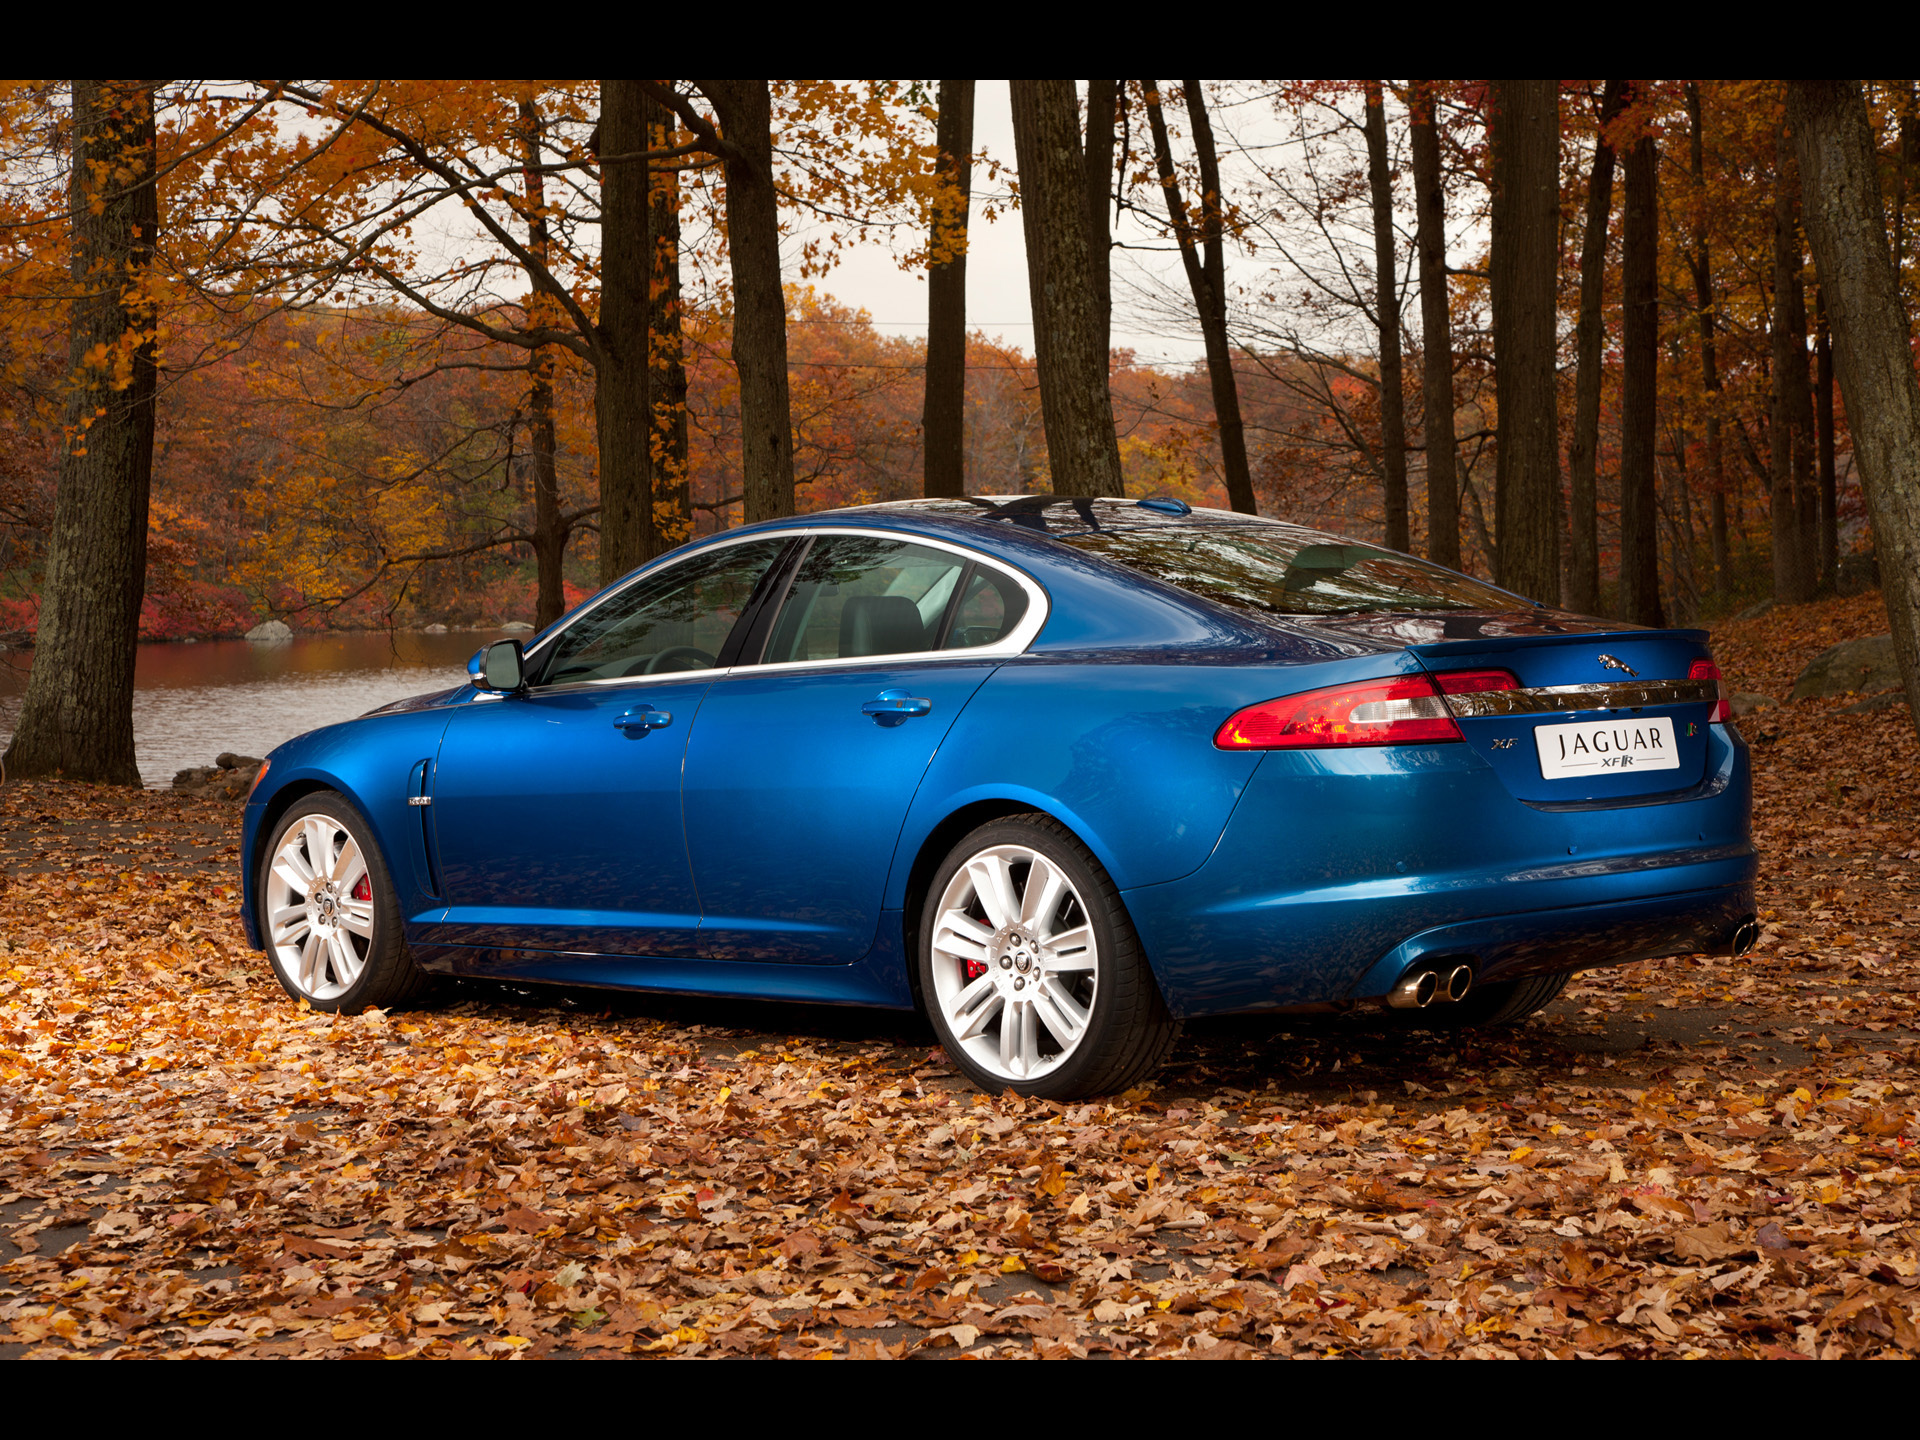 JAGUAR XF 10 blue